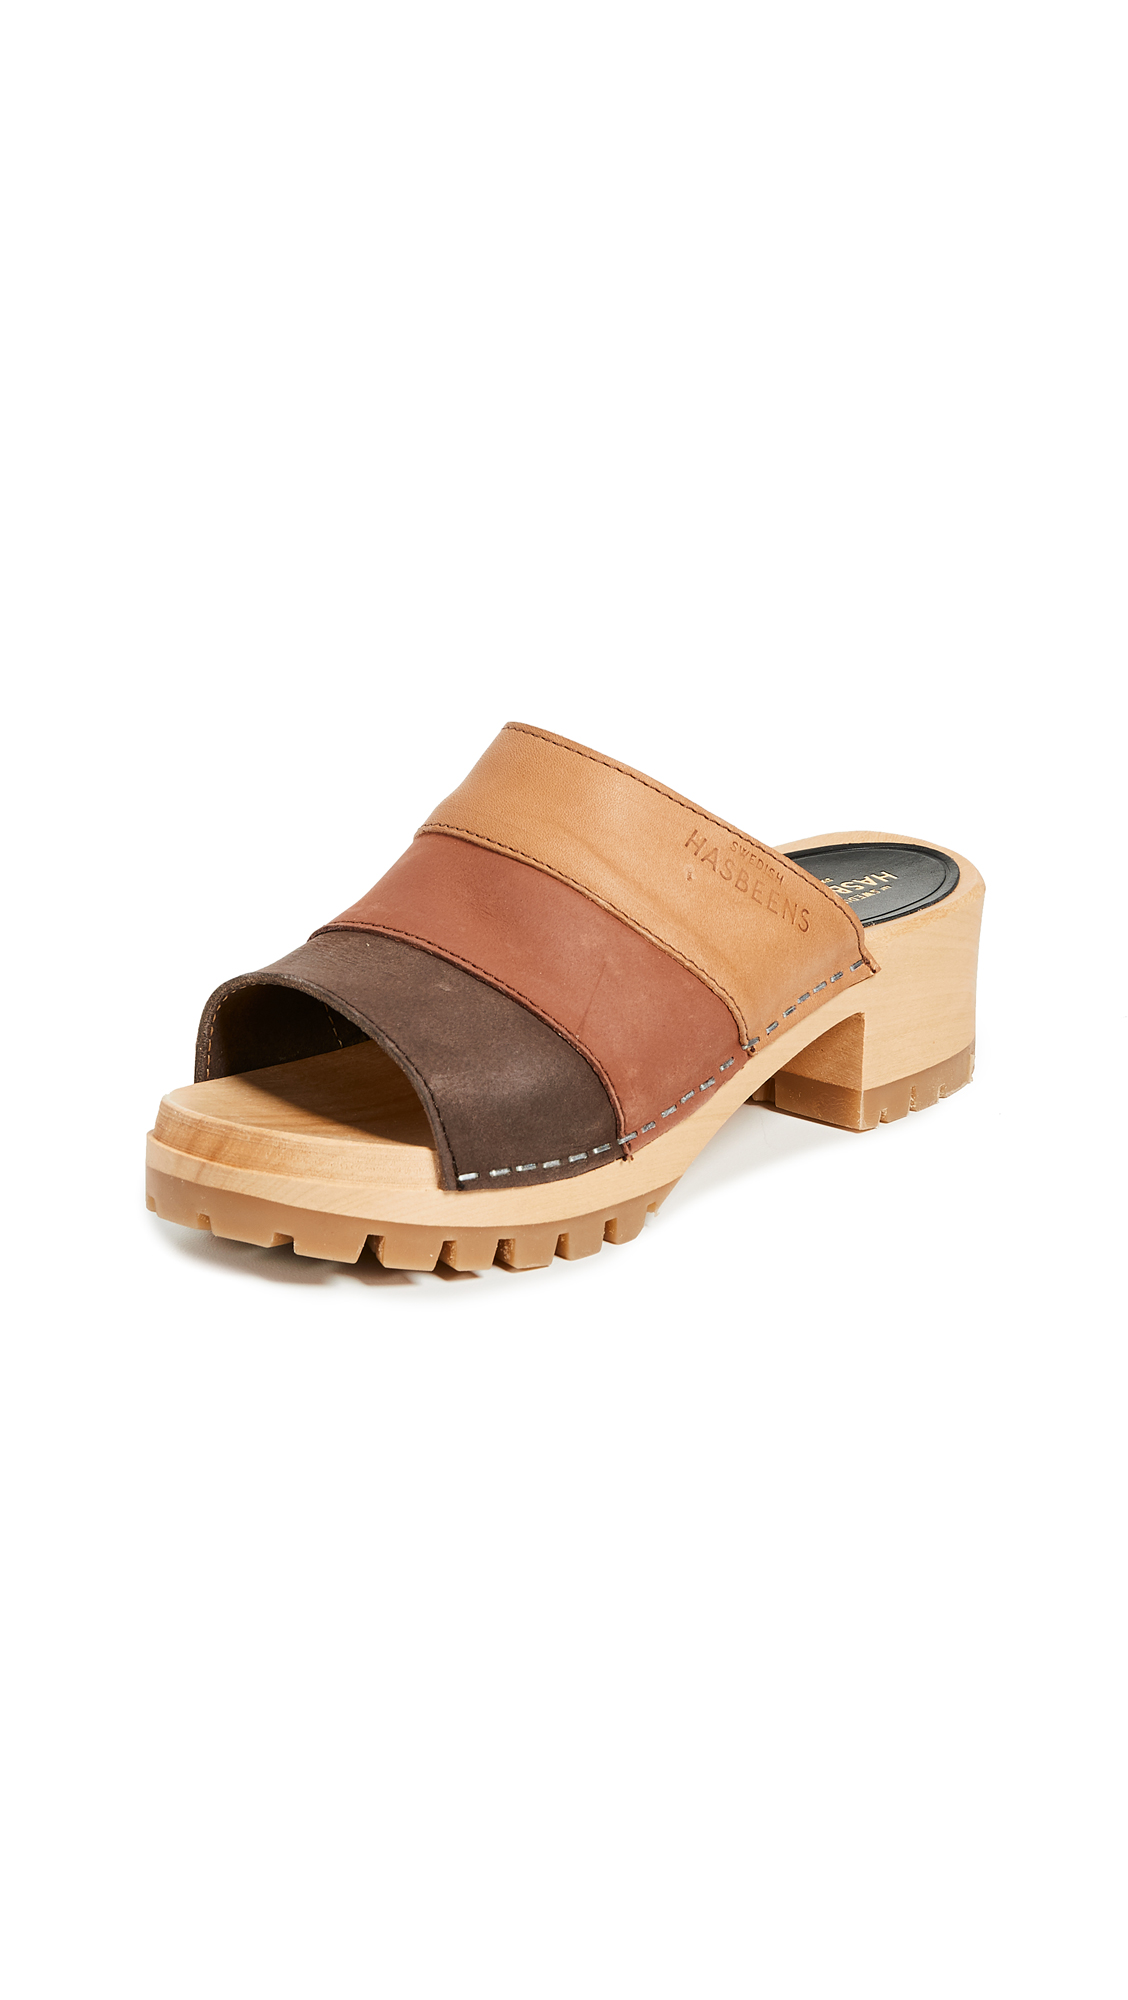 Swedish Hasbeens Mona Colorblock Sandals - Brown Multi